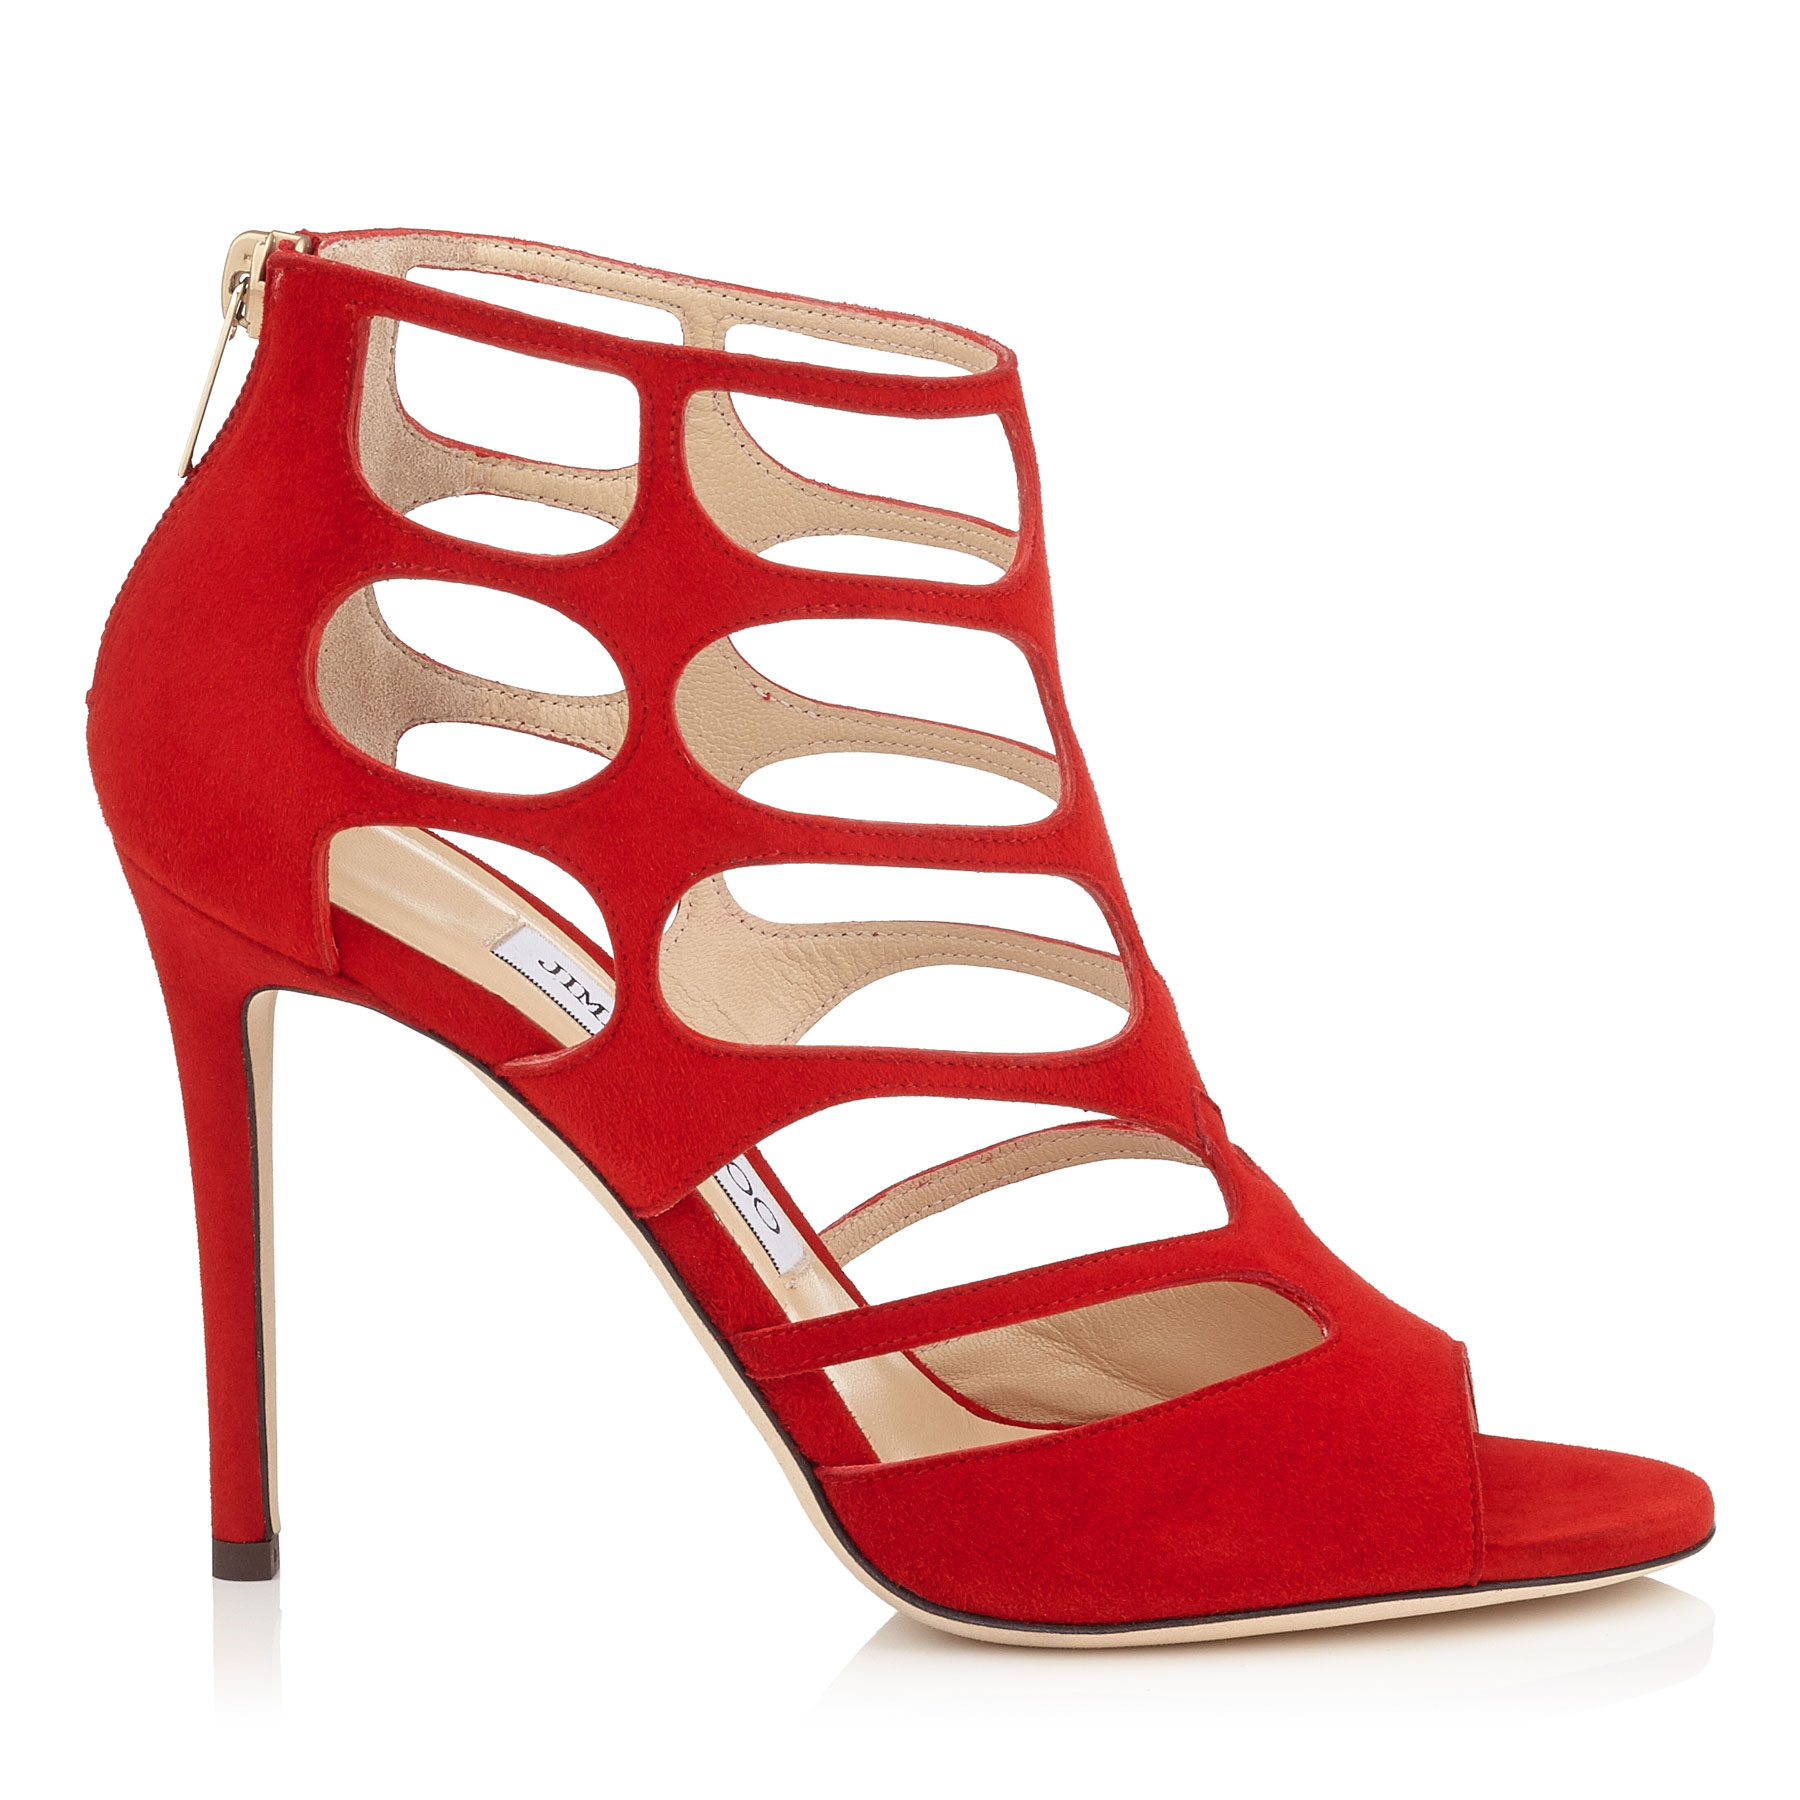 REN 100 Red Suede Sandals by Jimmy Choo